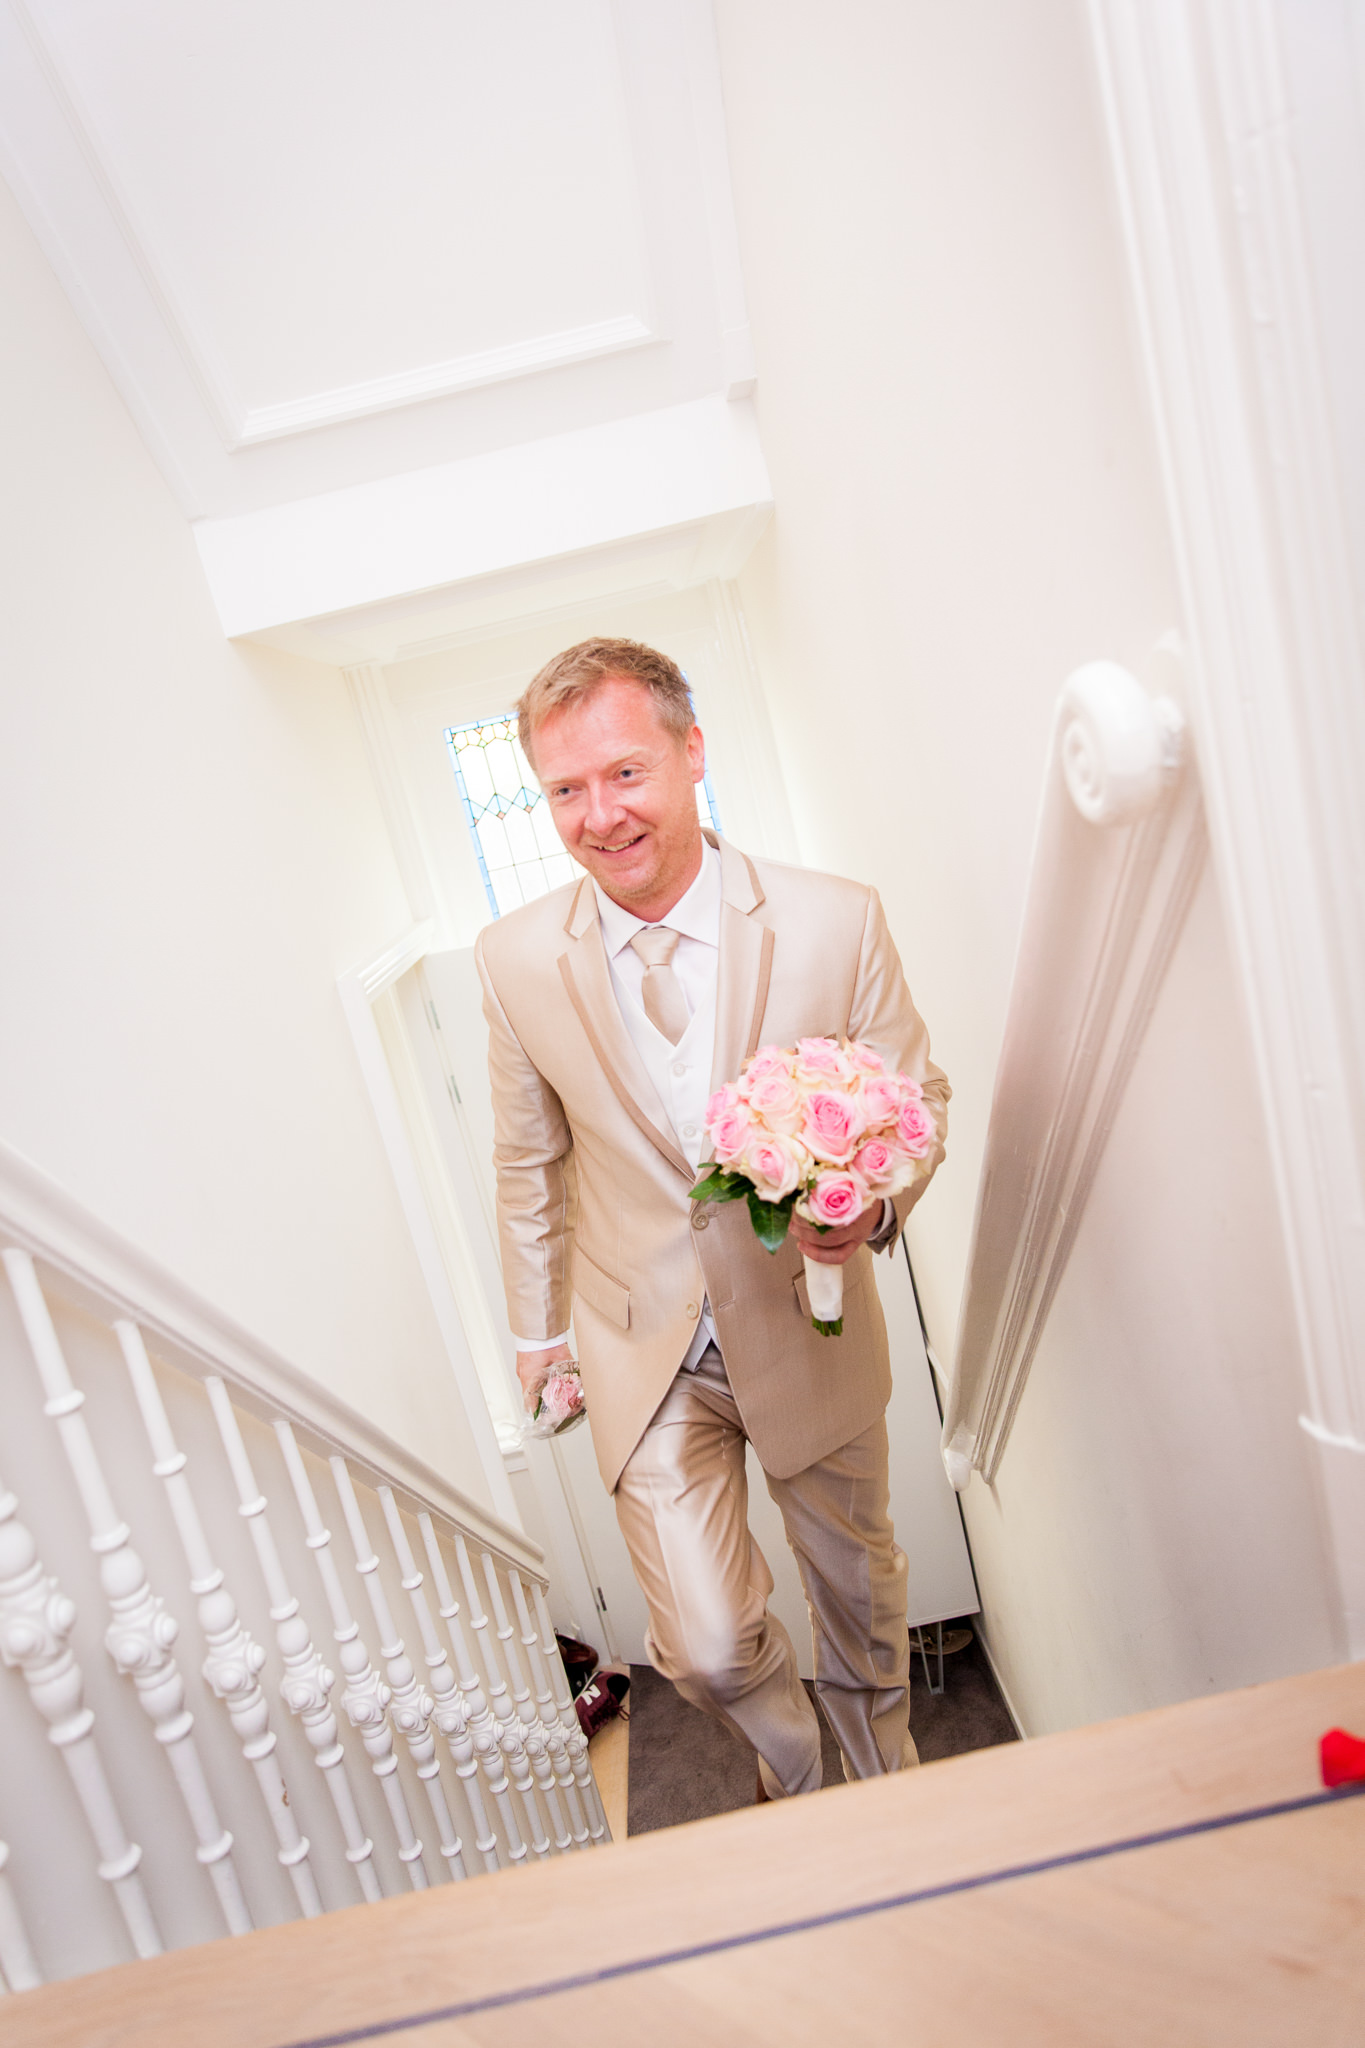 bride groom first look wedding photos Irish photographer david duignan photography dublin ireland 1115